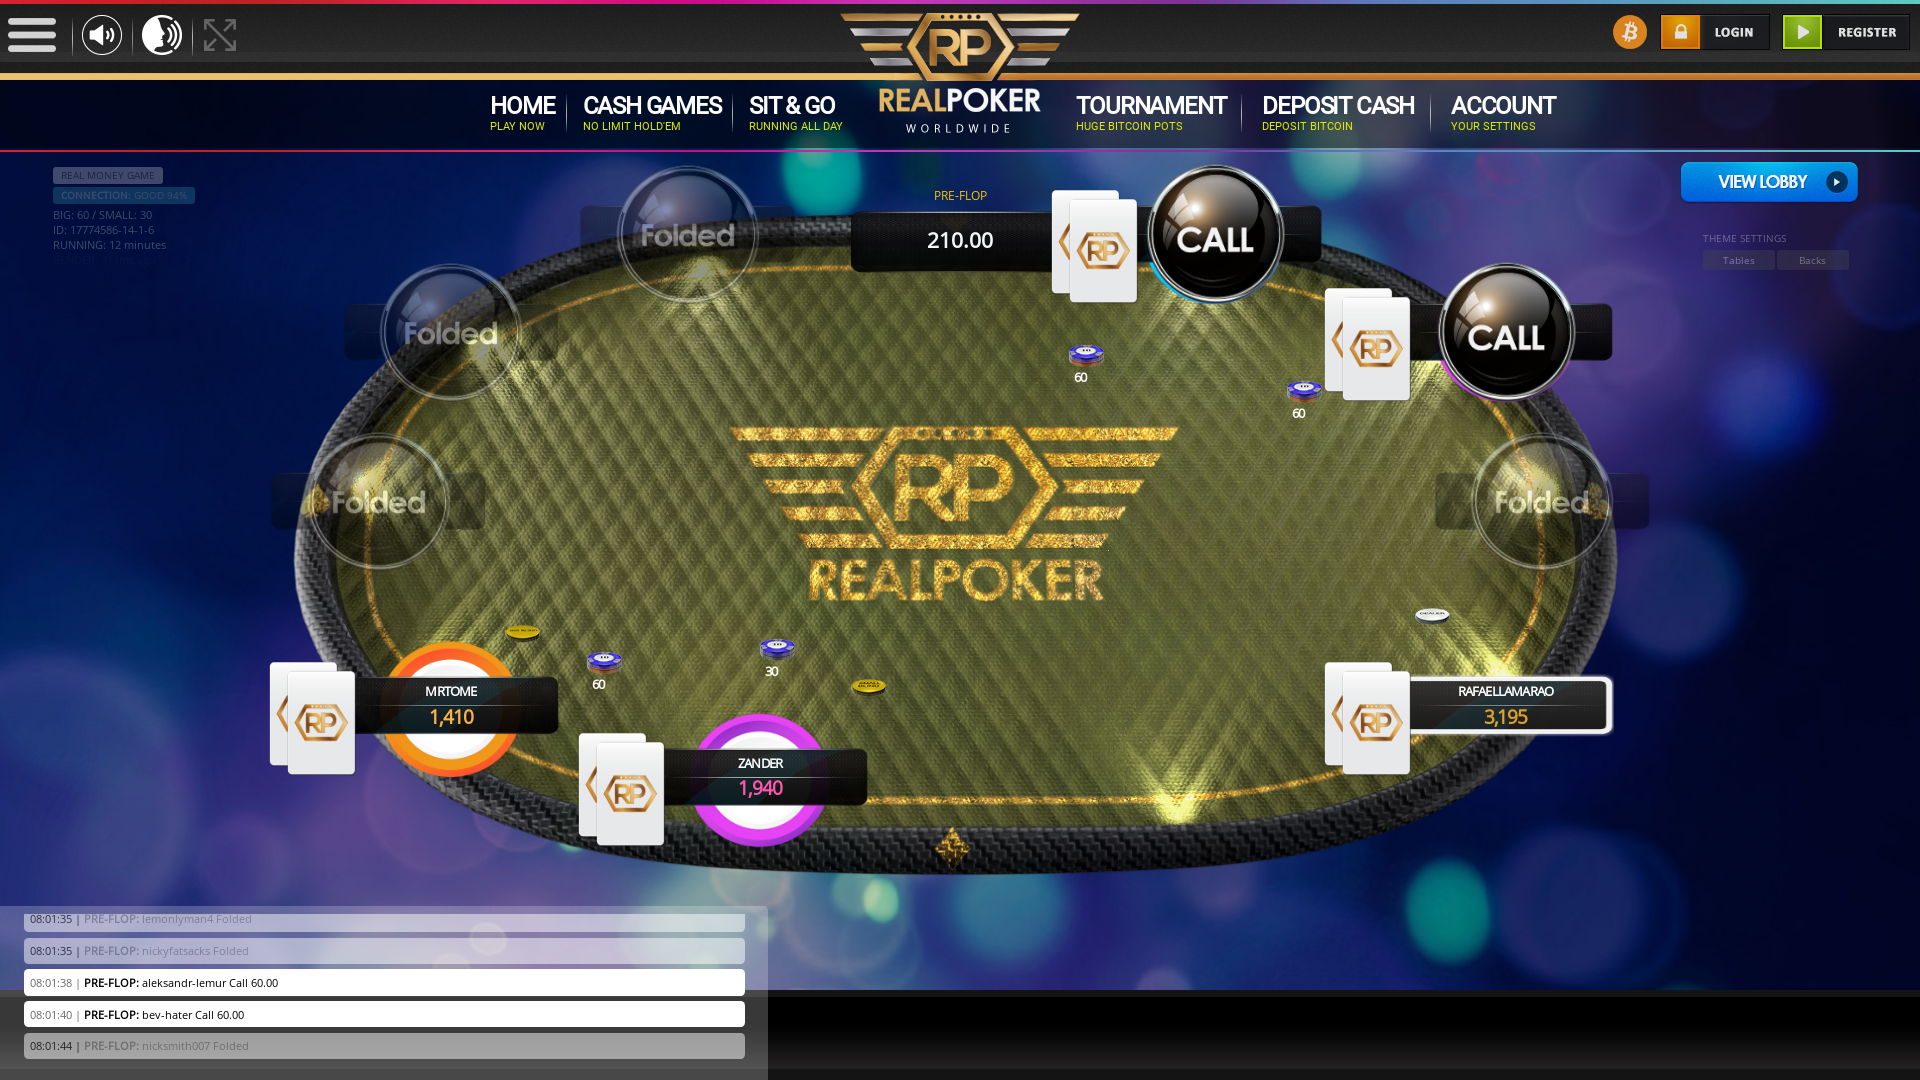 Real poker 10 player table in the 12th minute